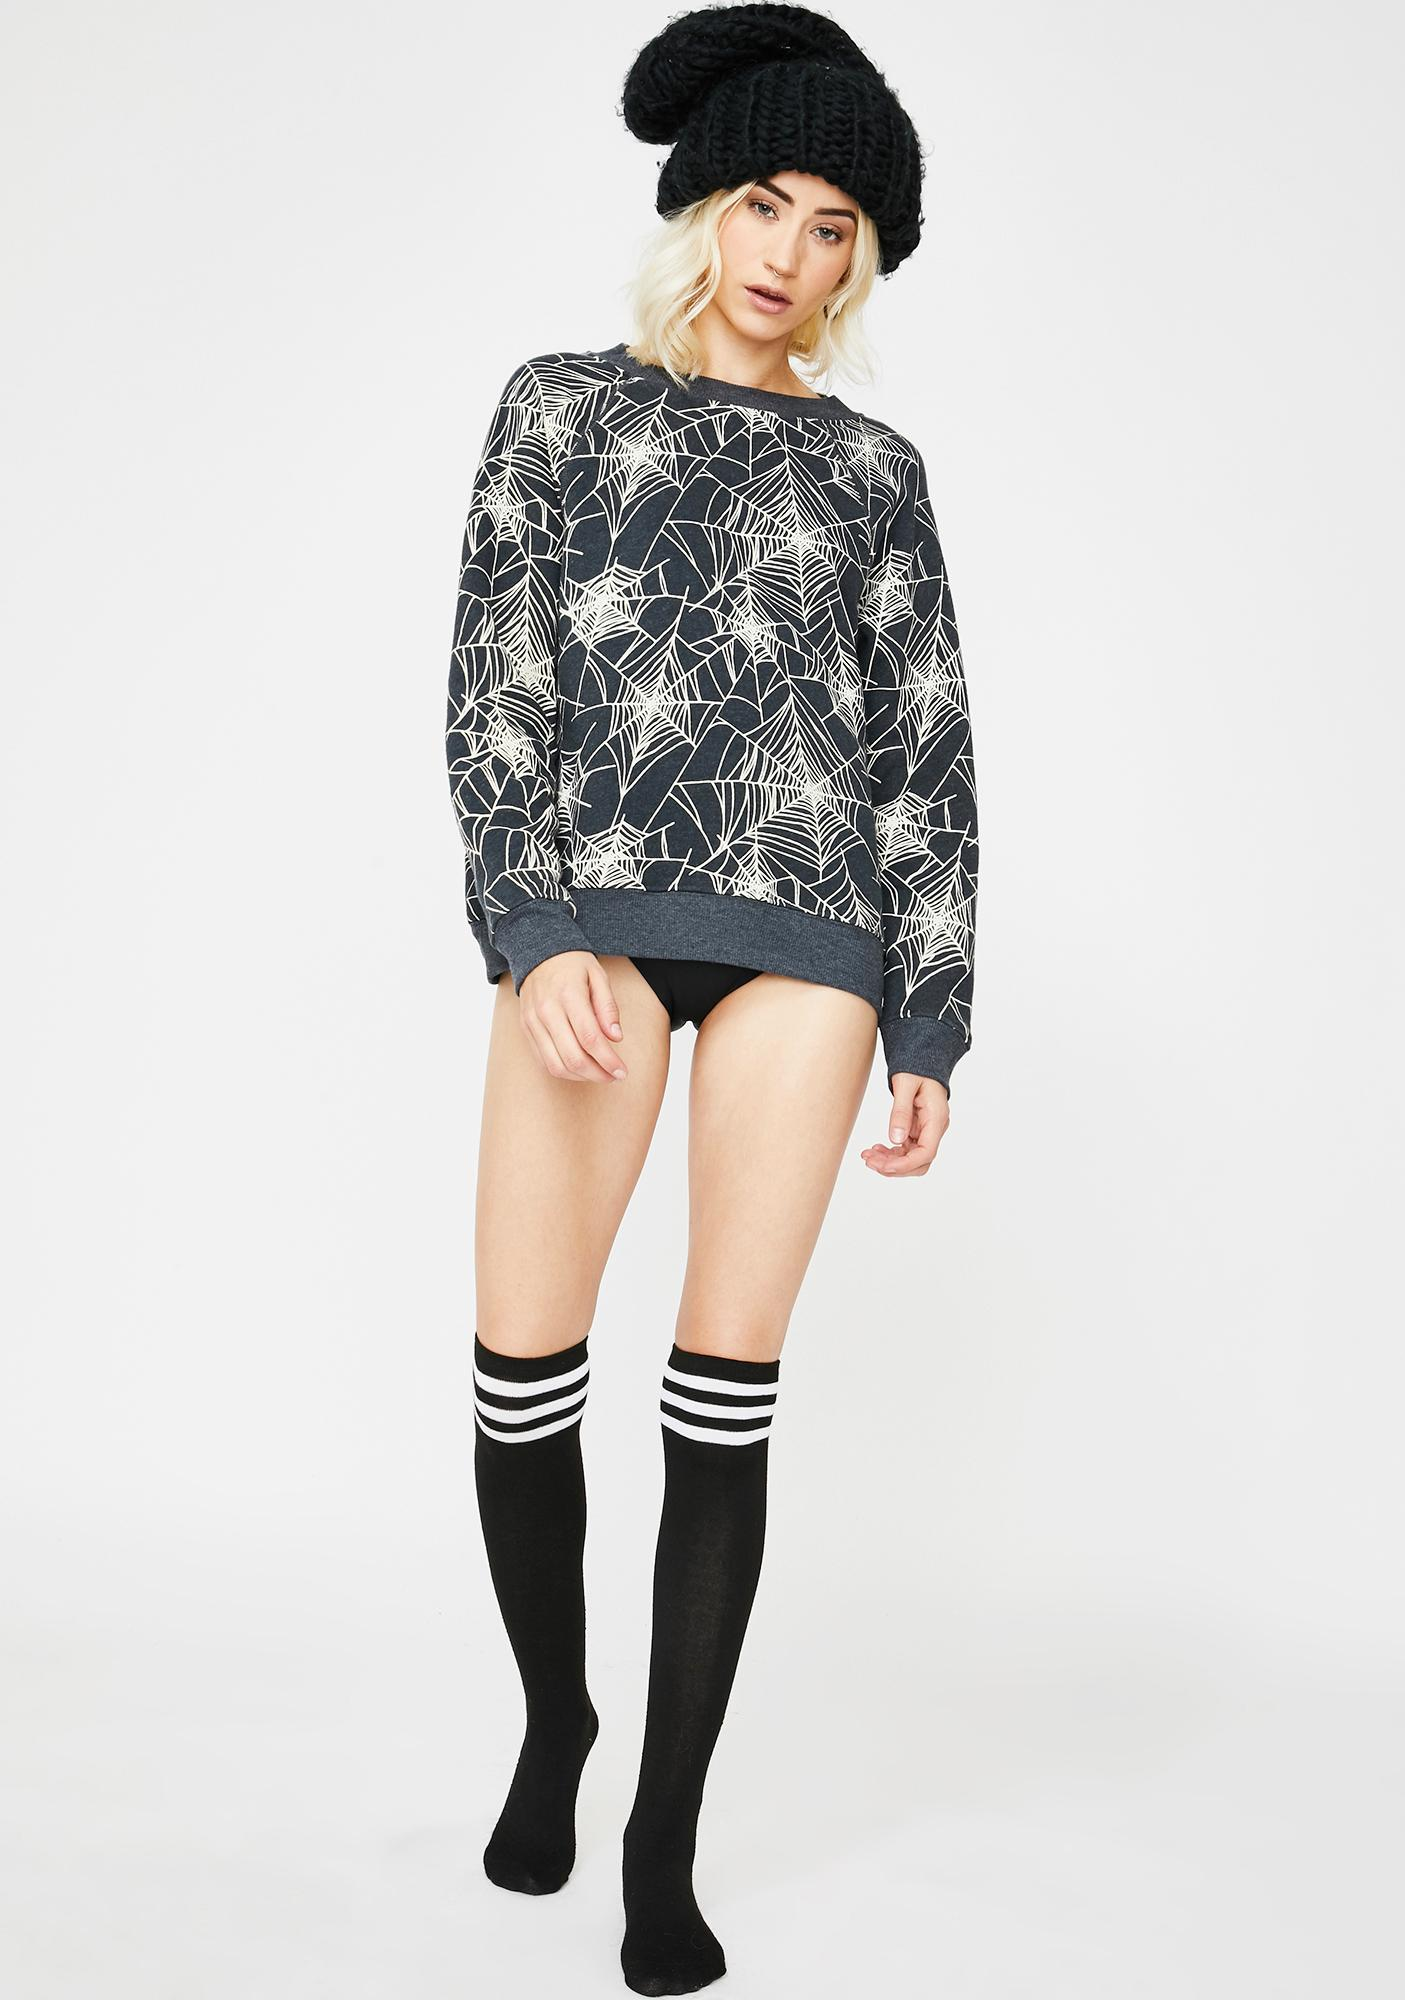 Wildfox Couture Black Widow Sommers Sweatshirt